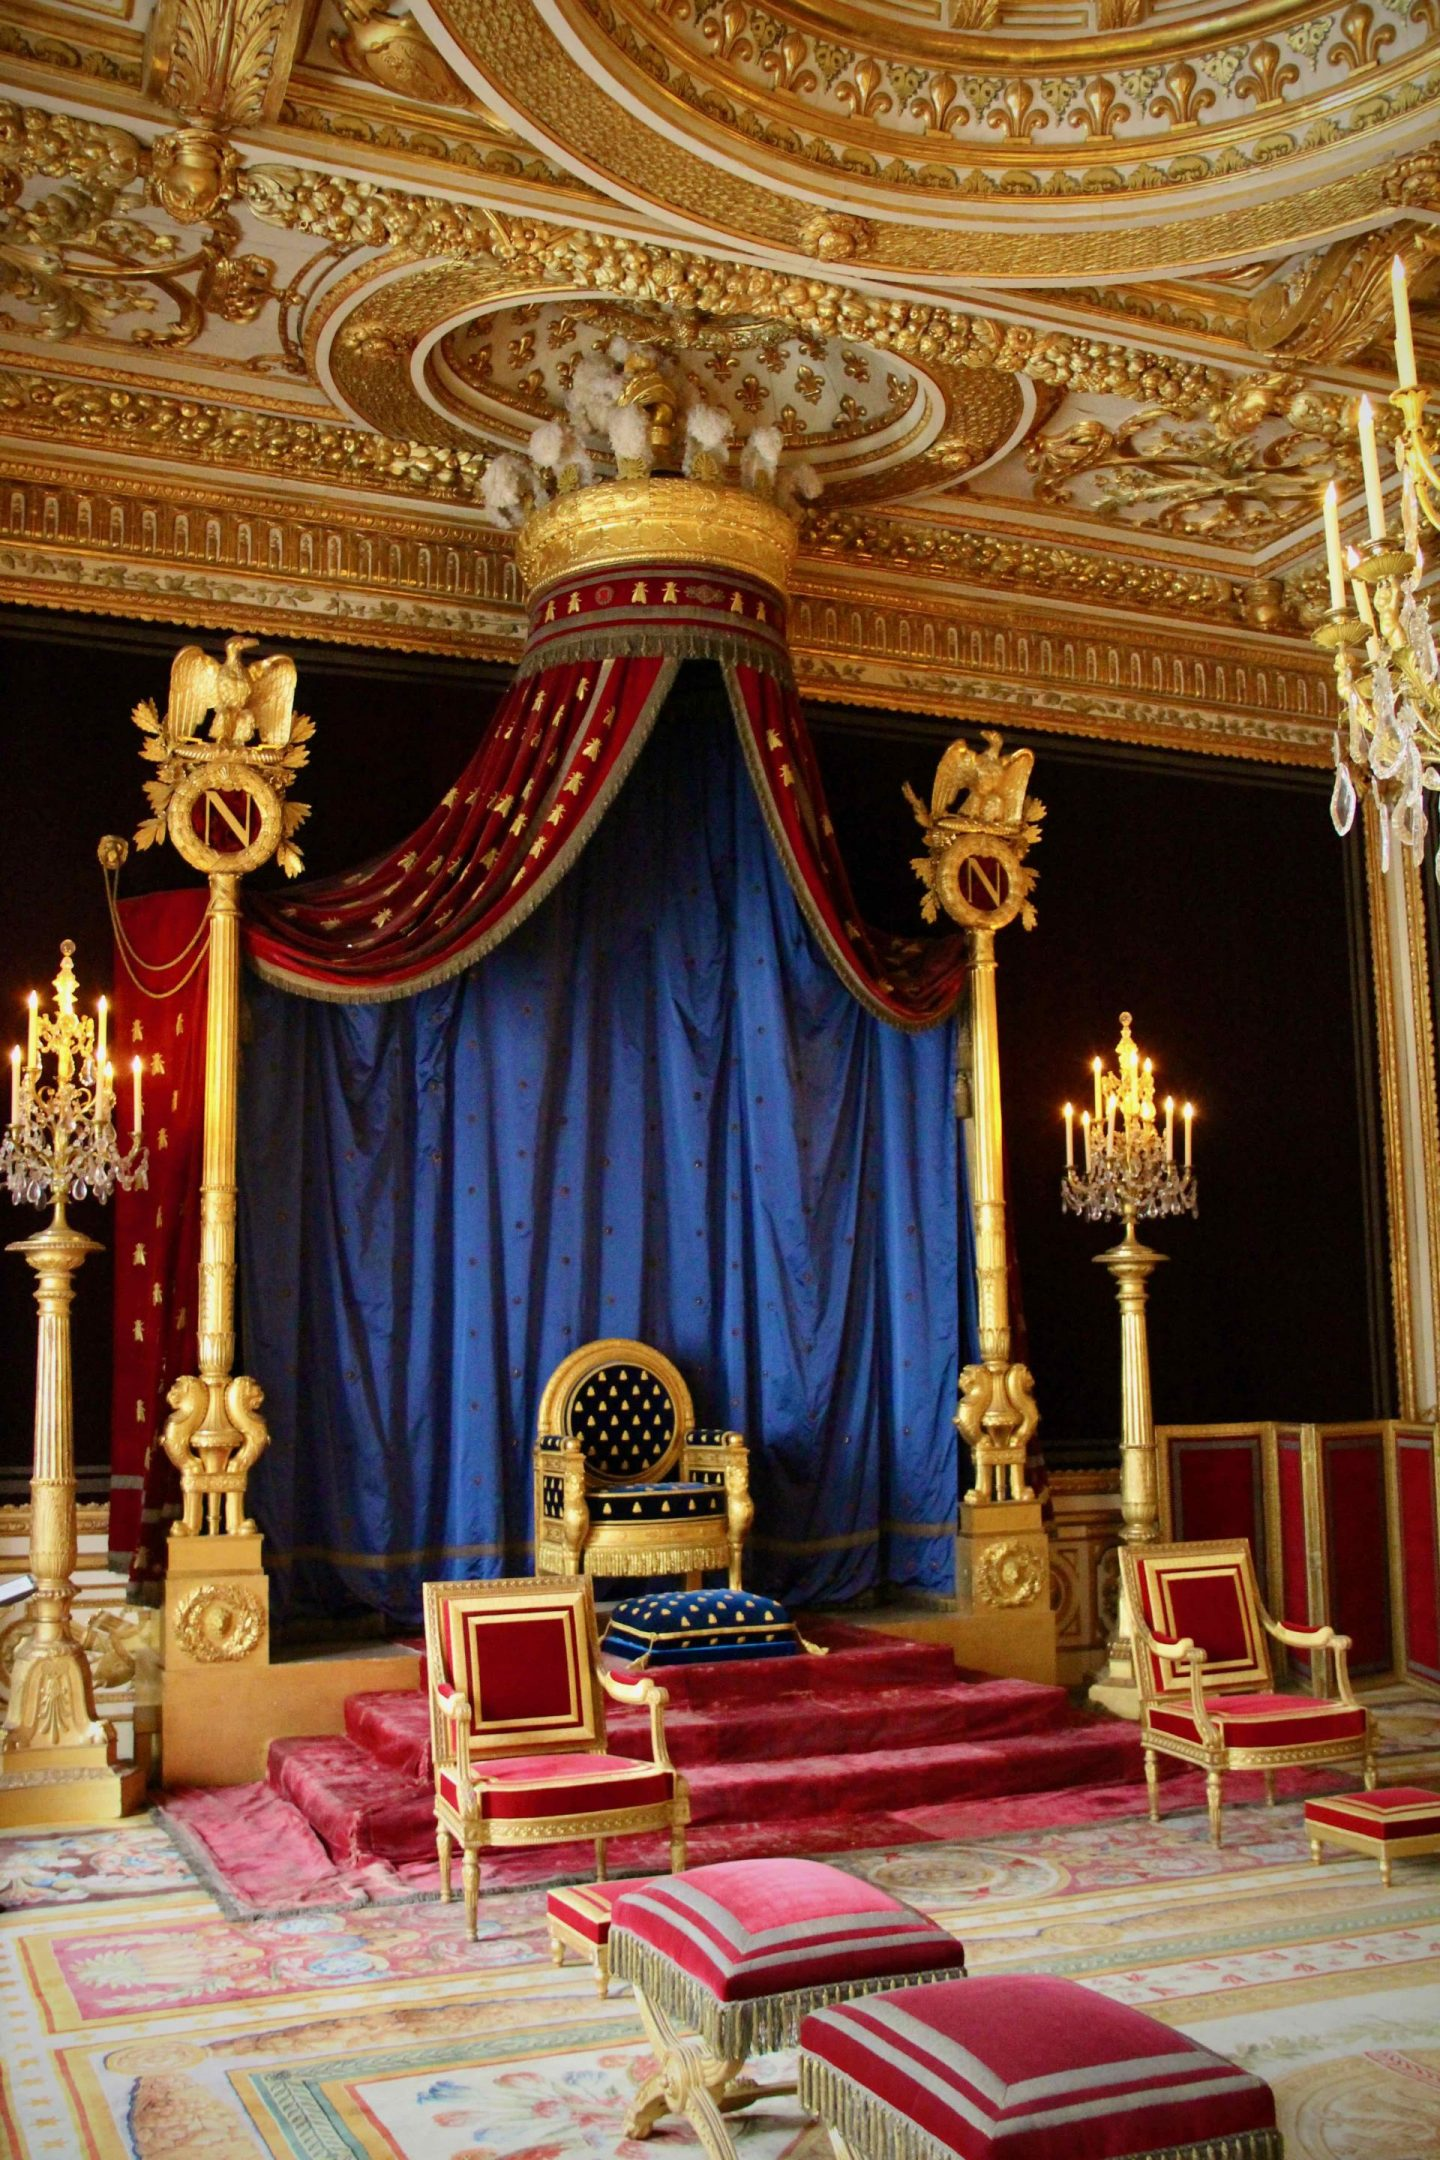 Fontainebleau Chateau Thrown Room | Fontainebleau Travel Guide | The Spectacular Adventurer